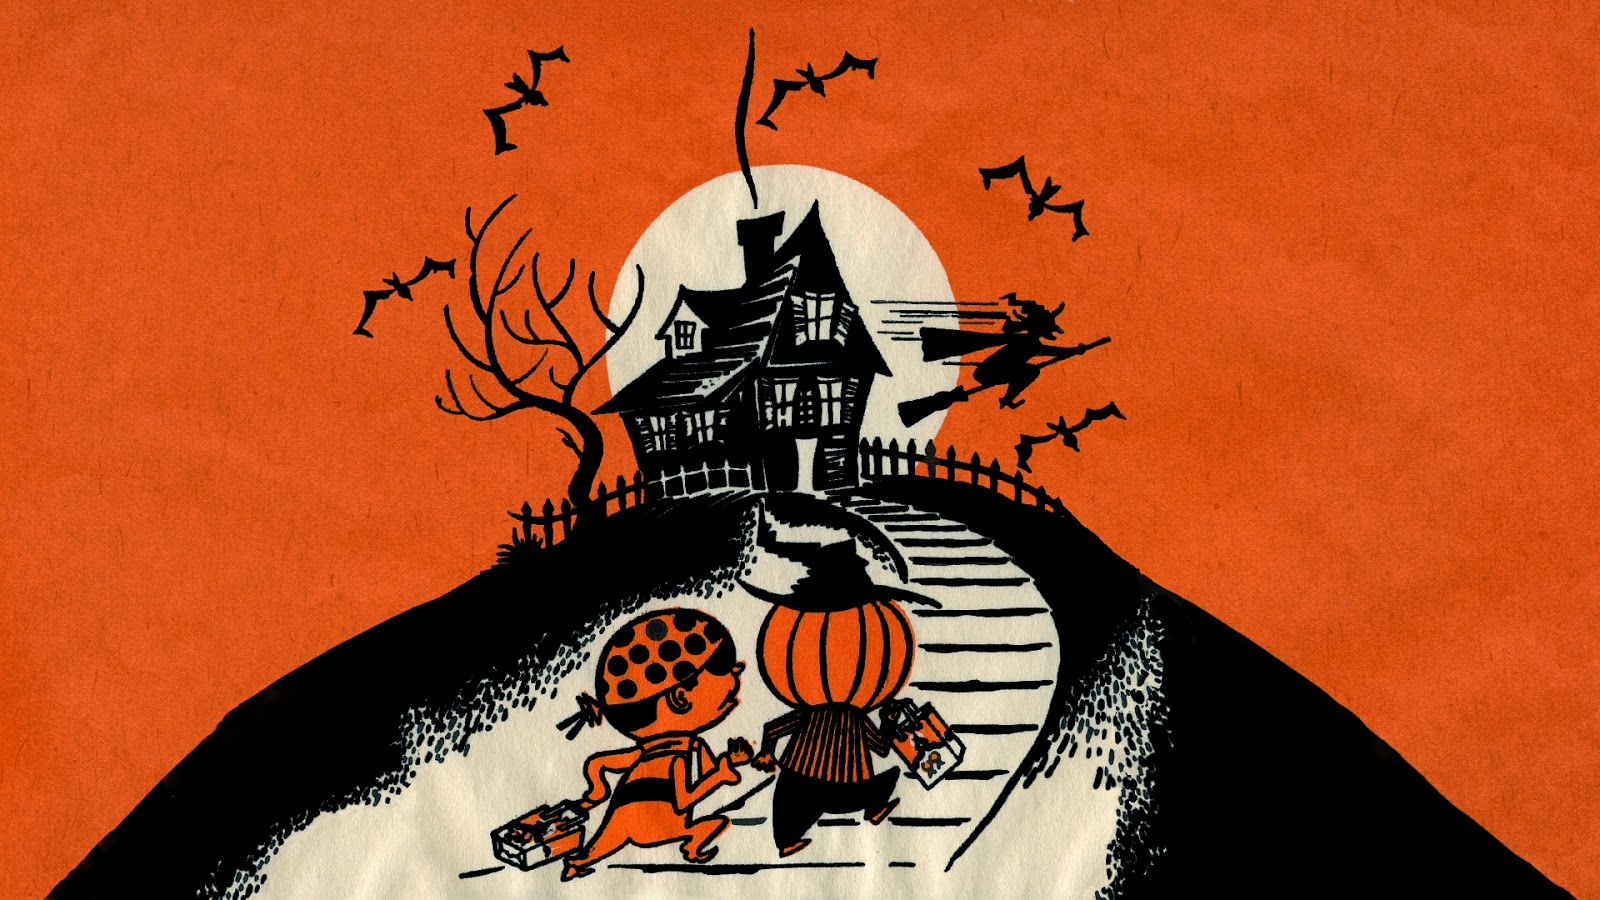 Neato Coolville HALLOWEEN WALLPAPER UP THE HILL TRICK OR TREAT 1600x900